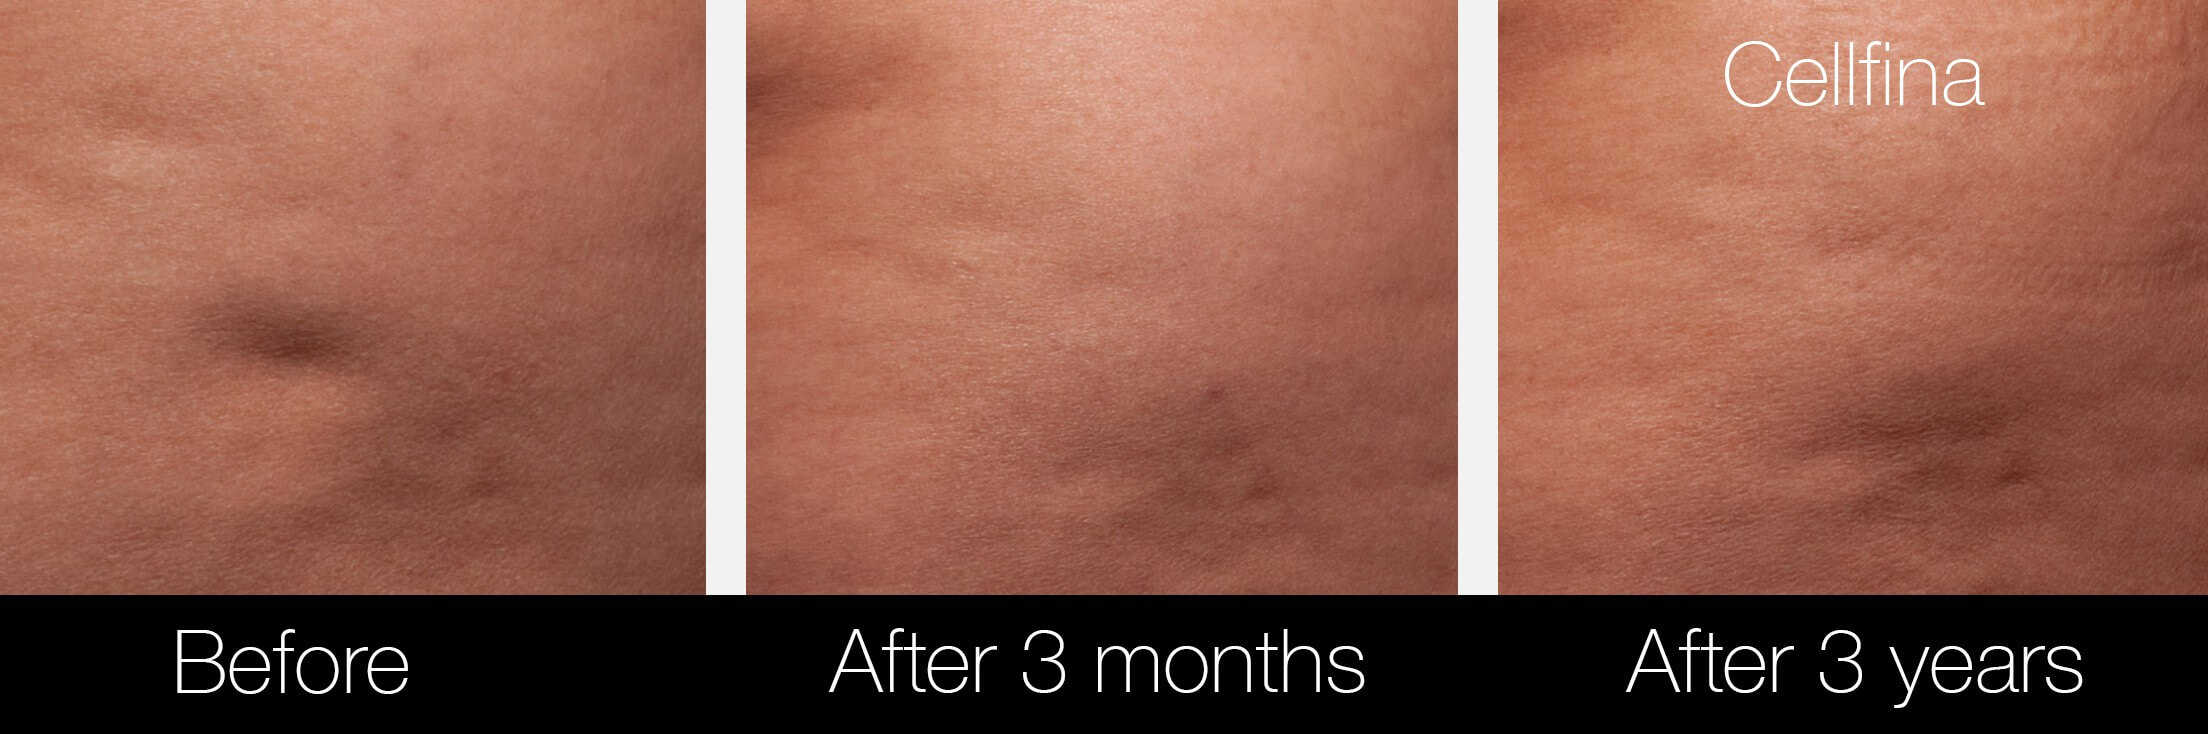 Cellfina Cellulite Treatment - Before and After Gallery – Photo 8